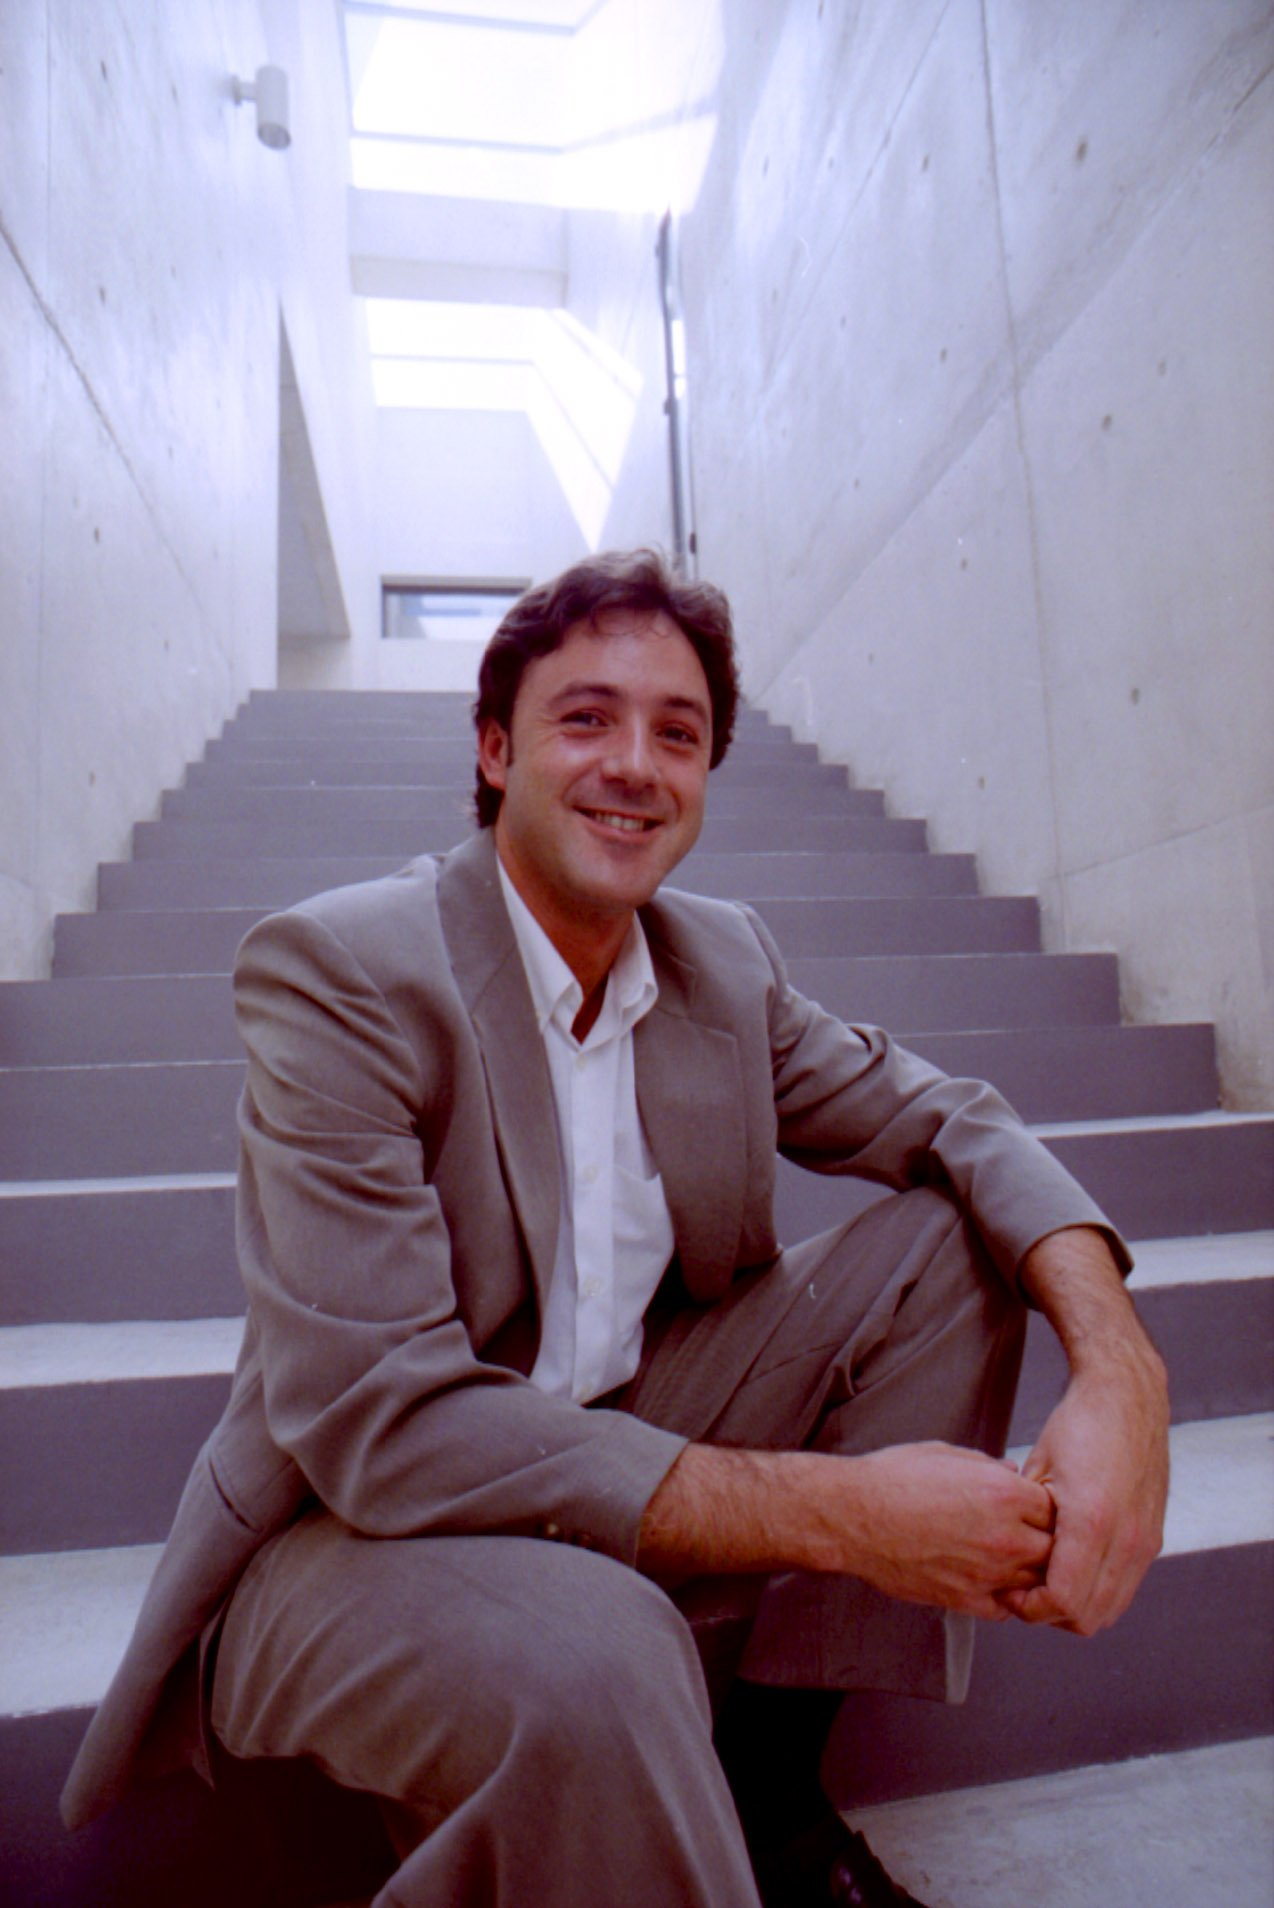 Pedro Roncal en 1996. || Fuente: Wikimedia Commons